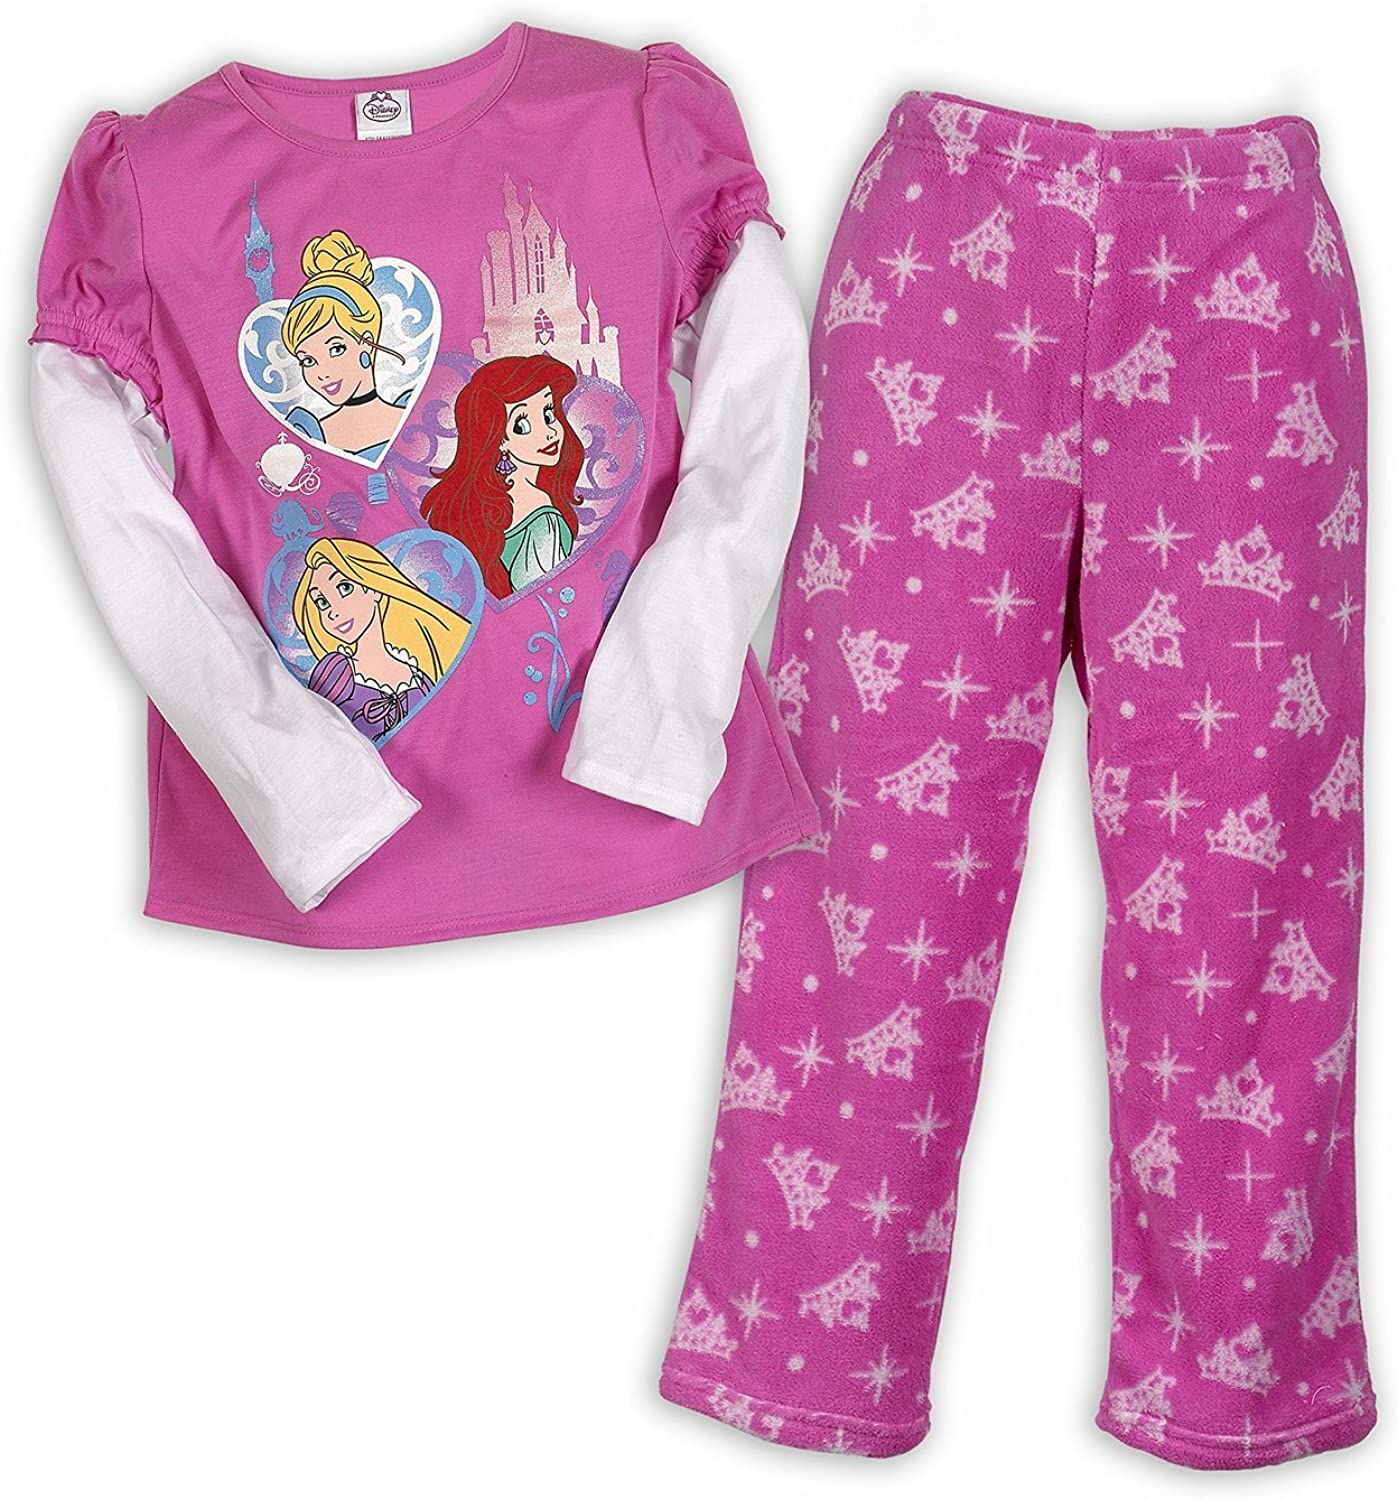 Disney Princesses Hearts Cozy Pajama Set Sizes 2T-8